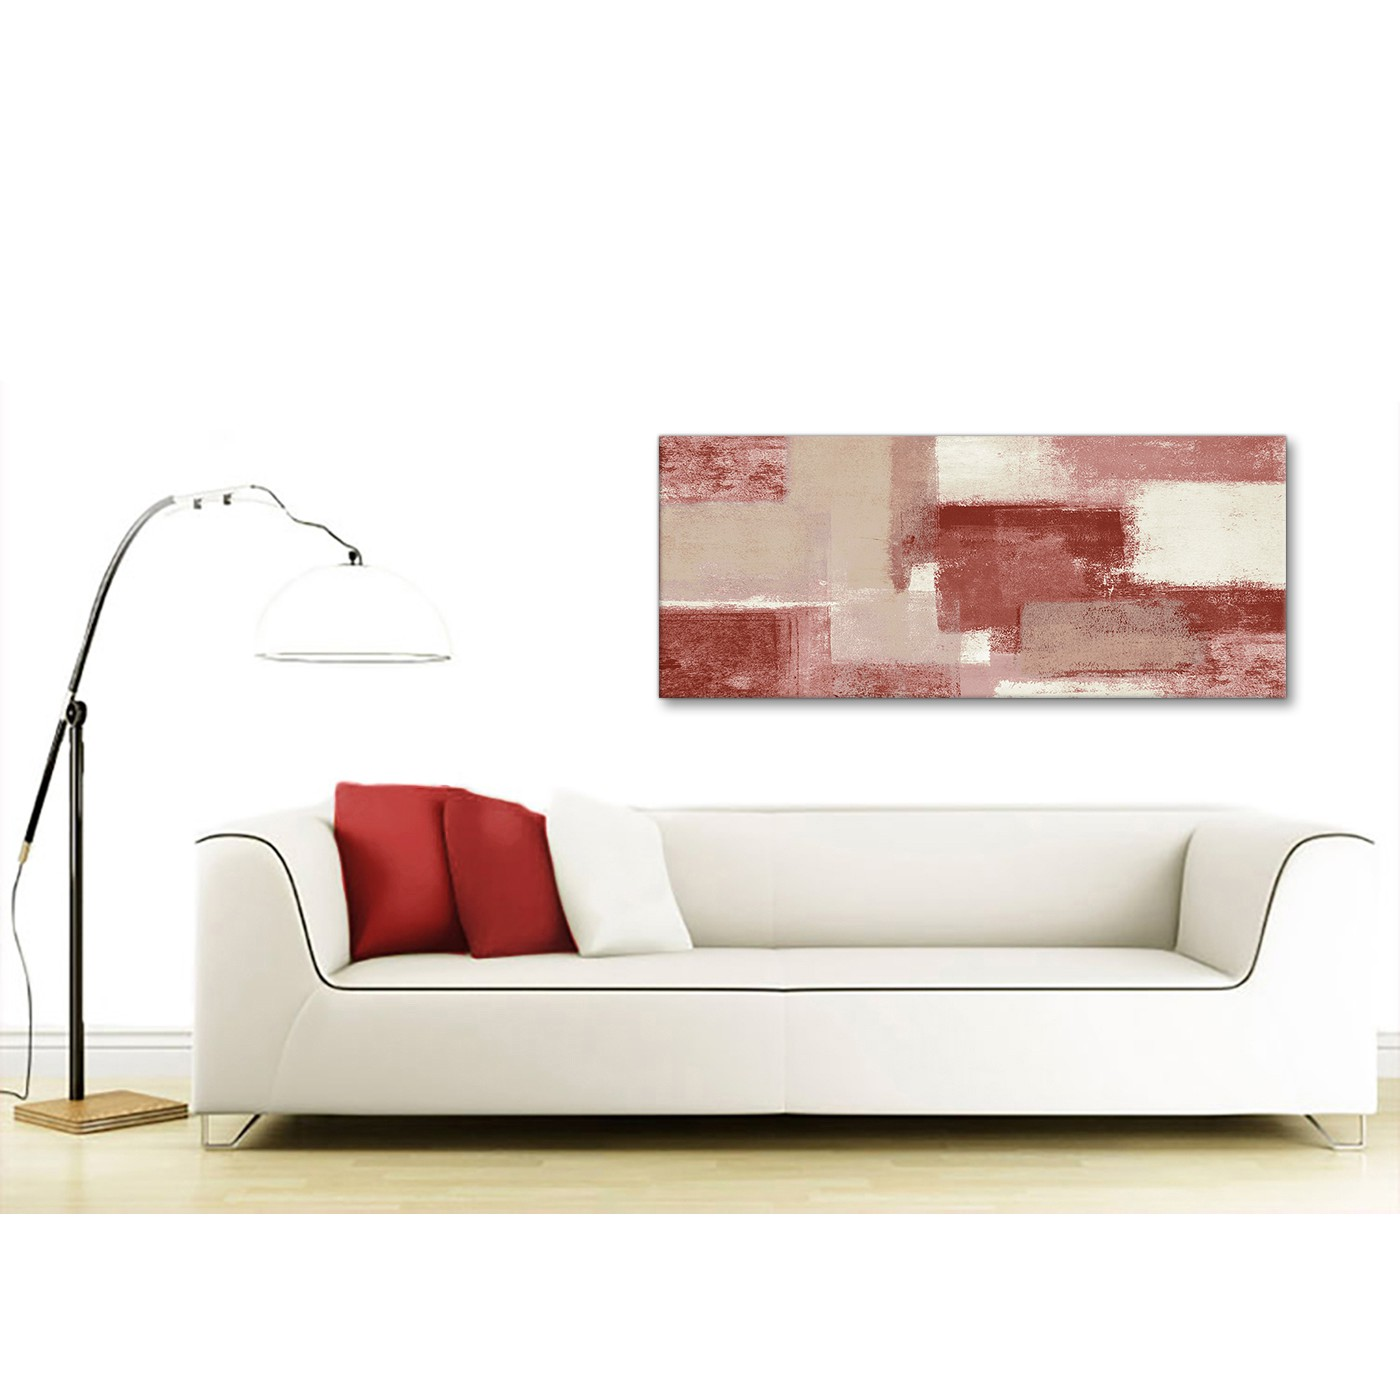 Display Gallery Item 4. Panoramic Red And Cream Living Room Canvas Wall Art  Accessories   Abstract 1370   120cm Print